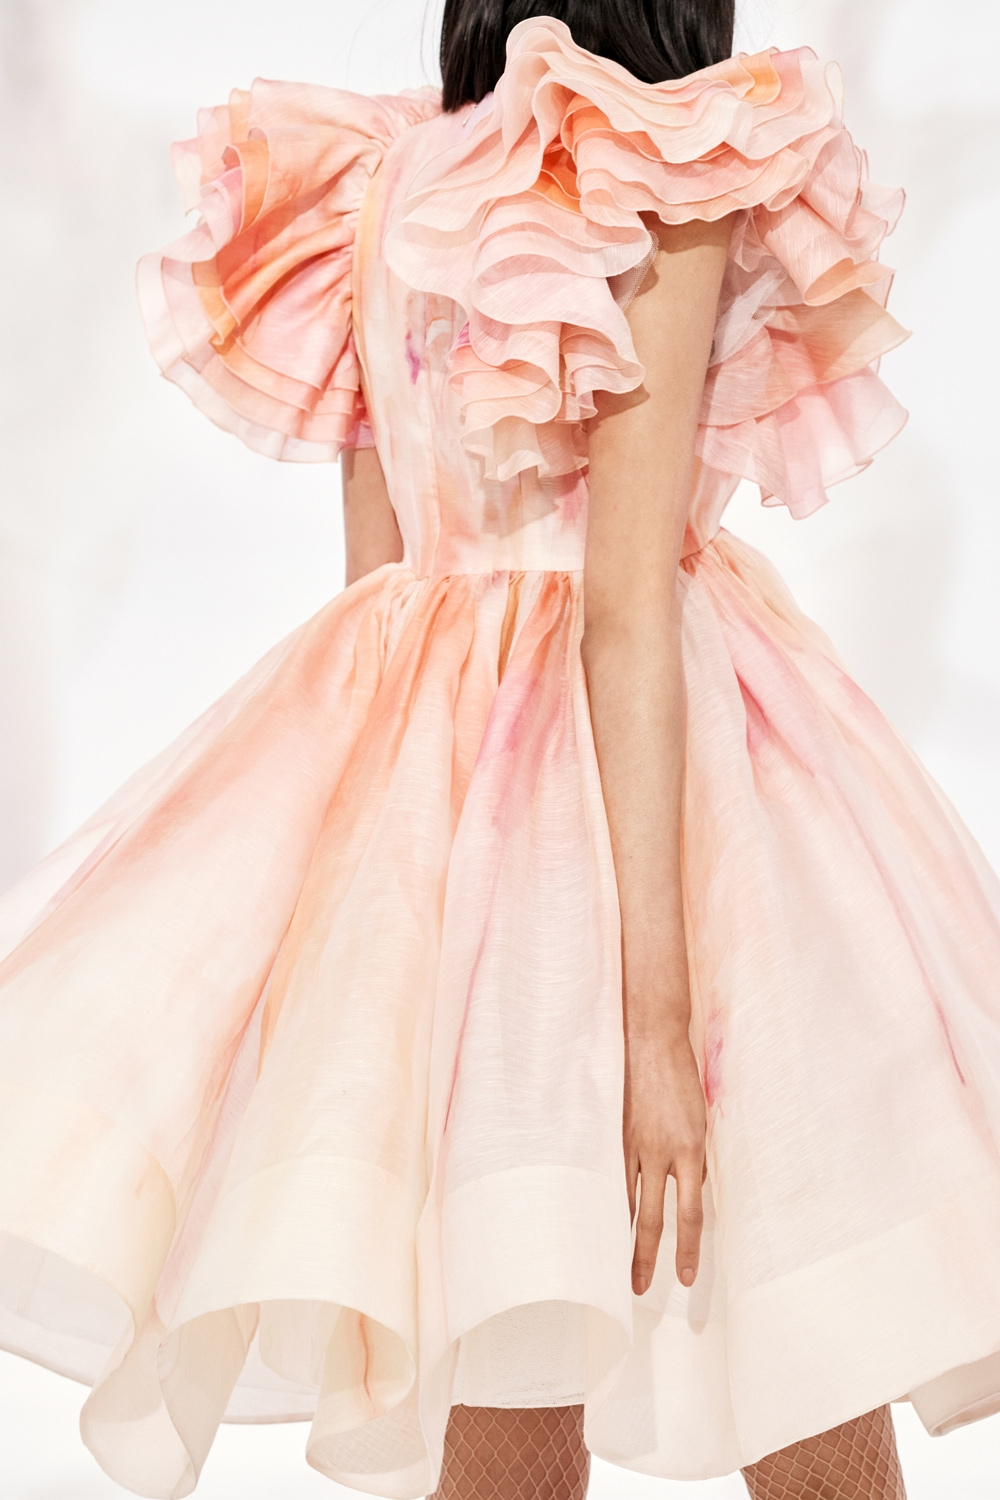 IN THE DETAIL: LOOK 12 SPRING READY TO WEAR 2022